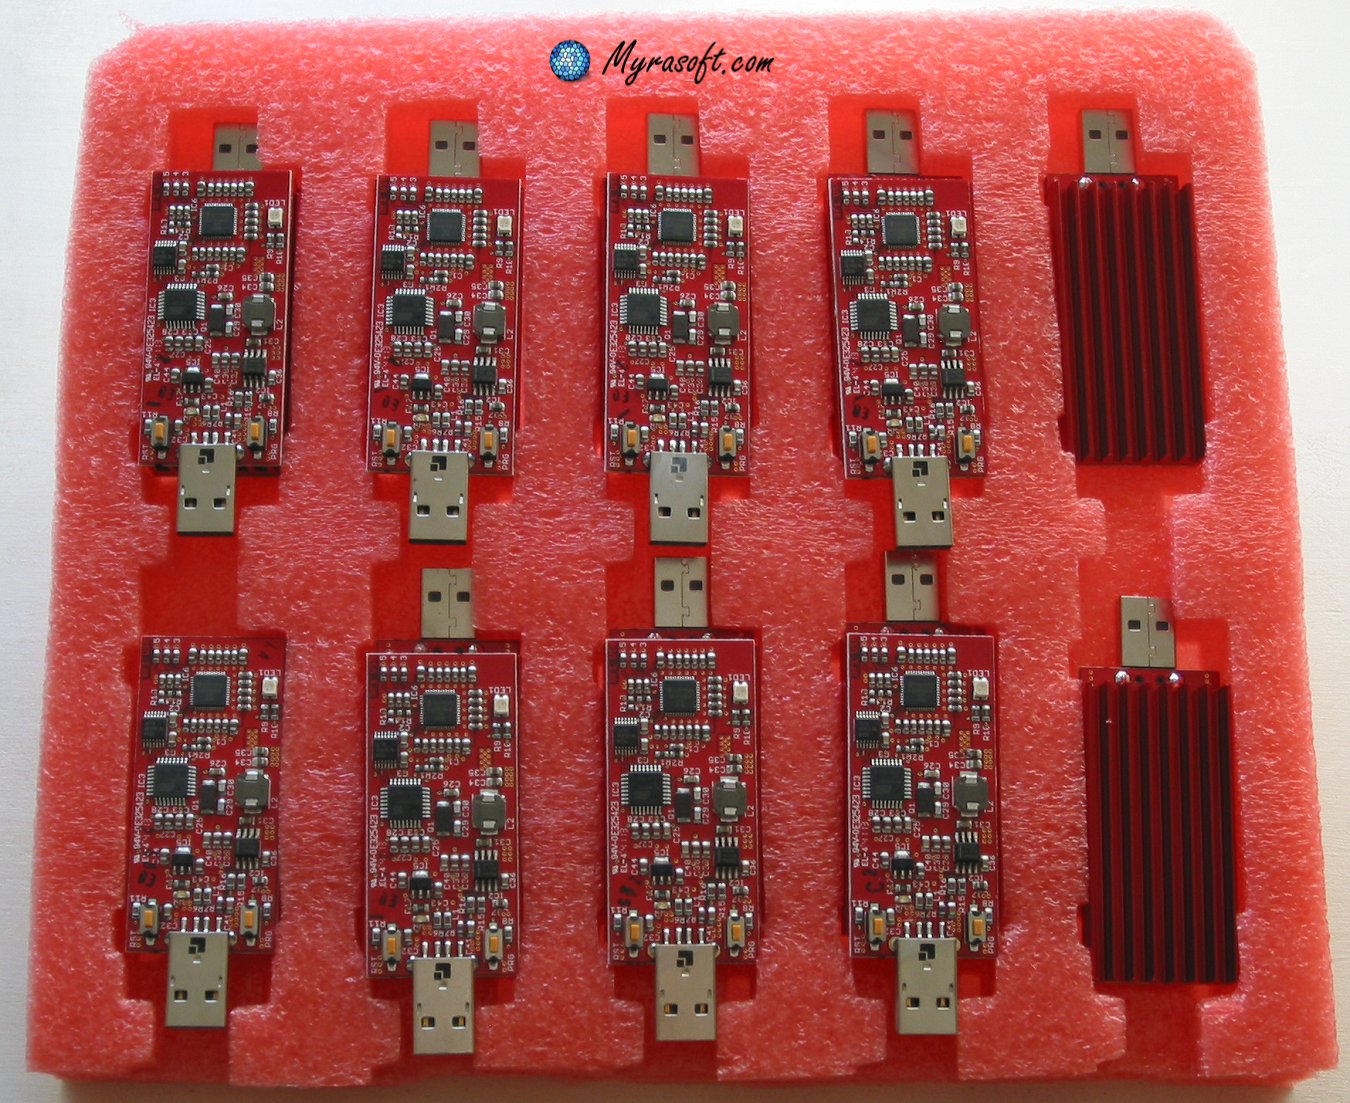 The Red Fury USB Bitcoin miner is scarce in the market. Order today before they are all gone!